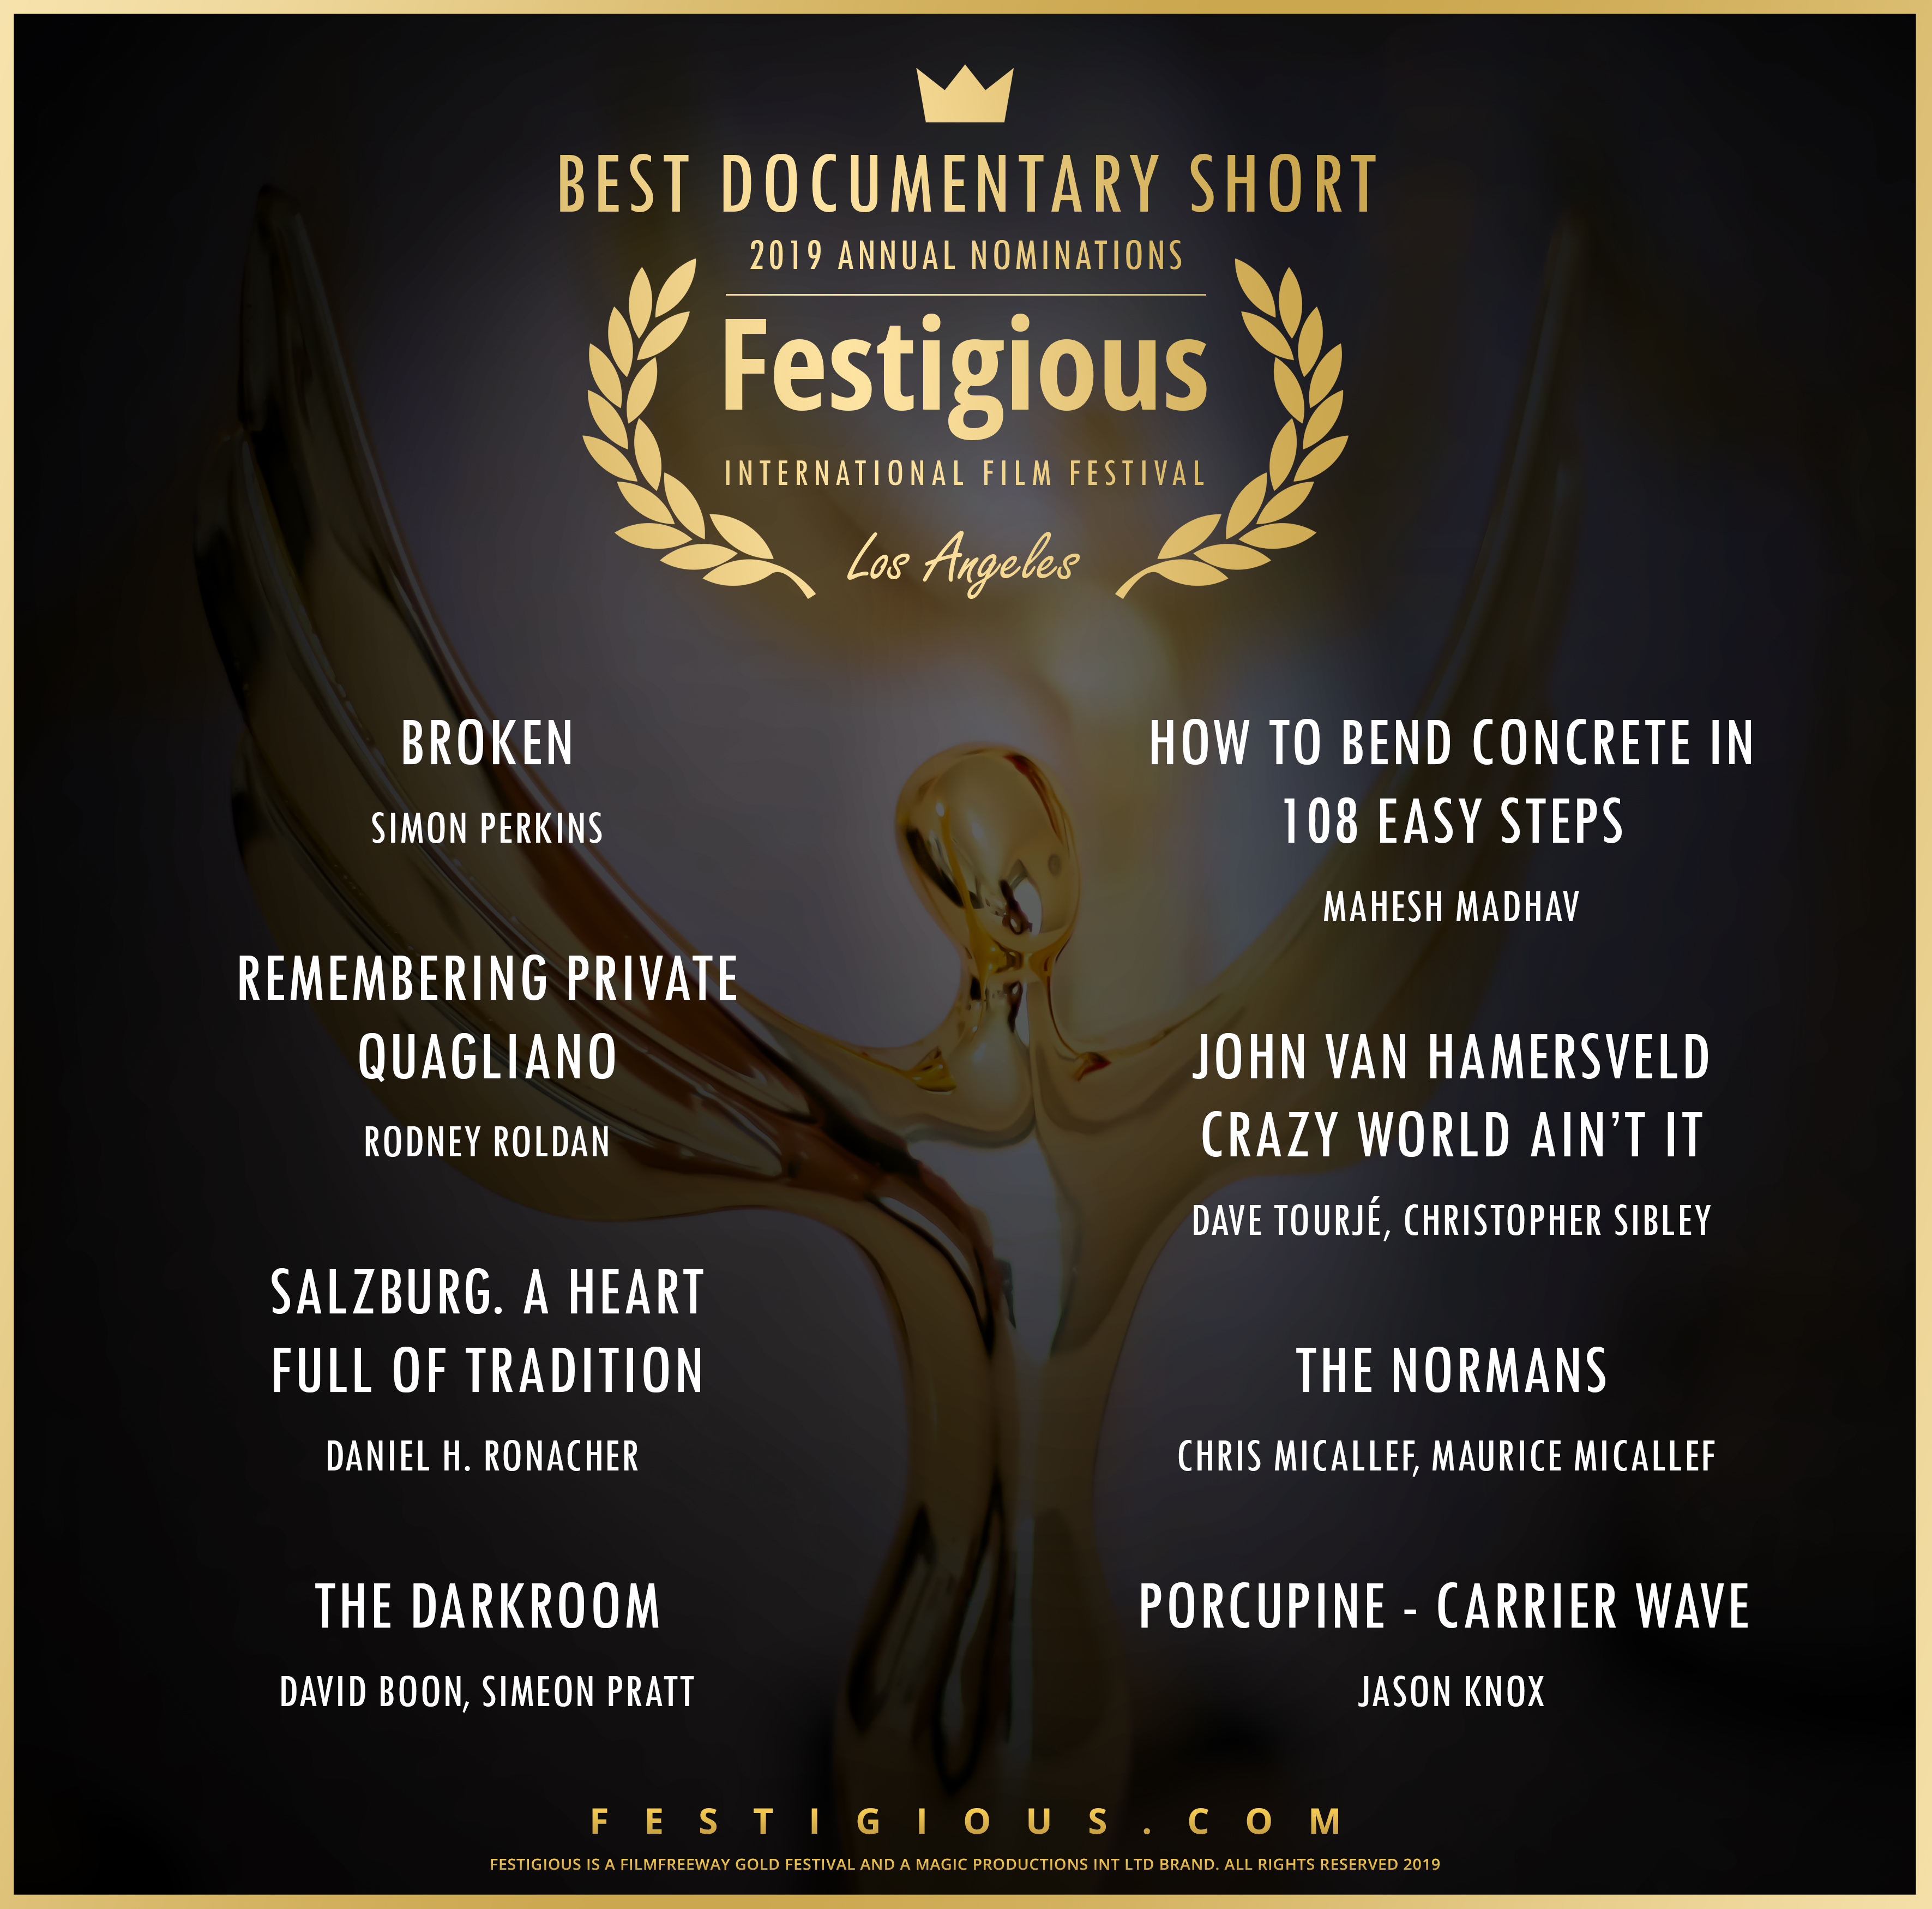 Festigious Best Documentary Short